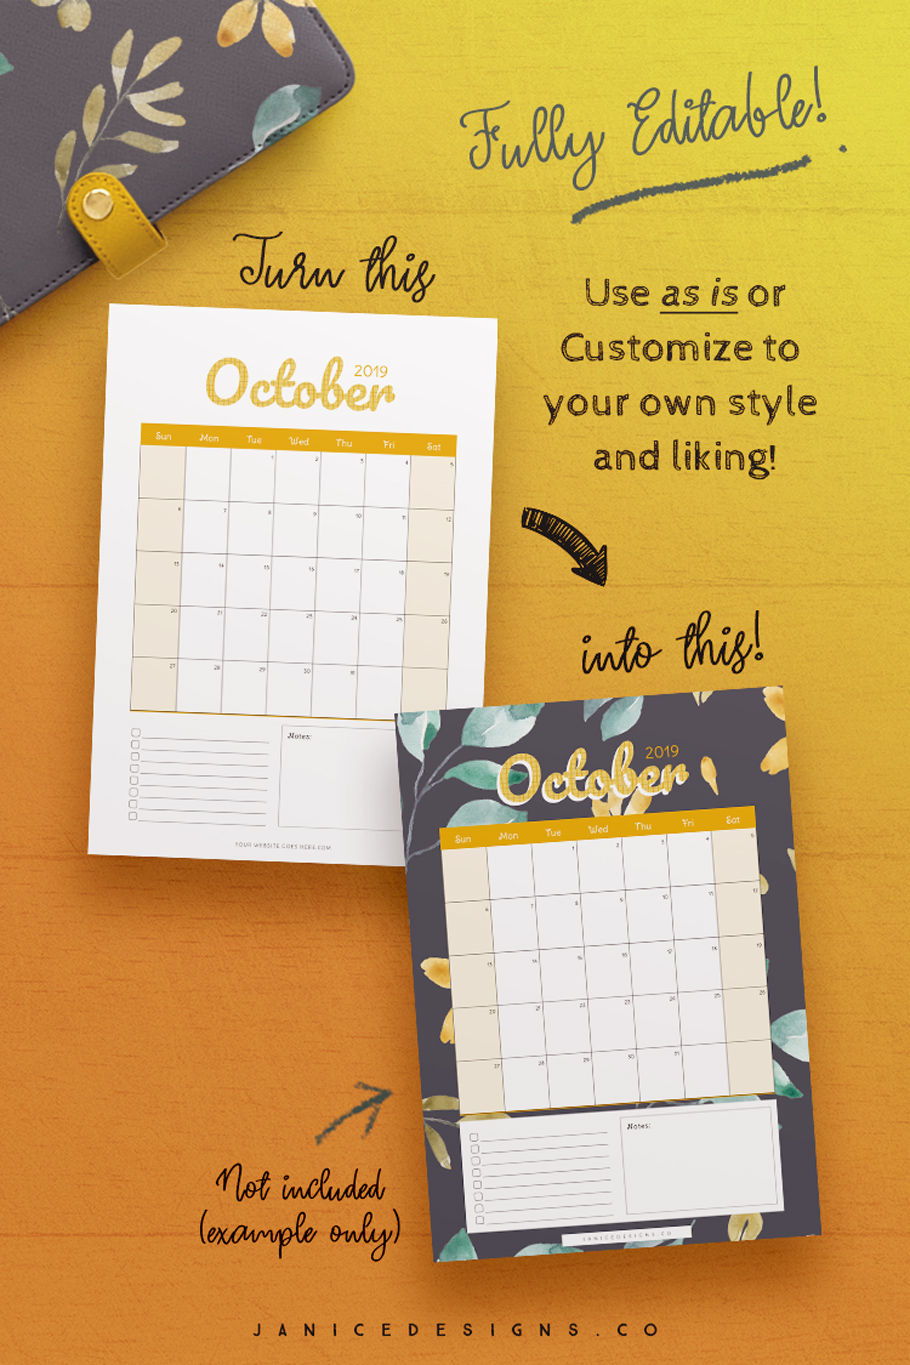 2019 Calendar InDesign Template for Commercial Use example image 5